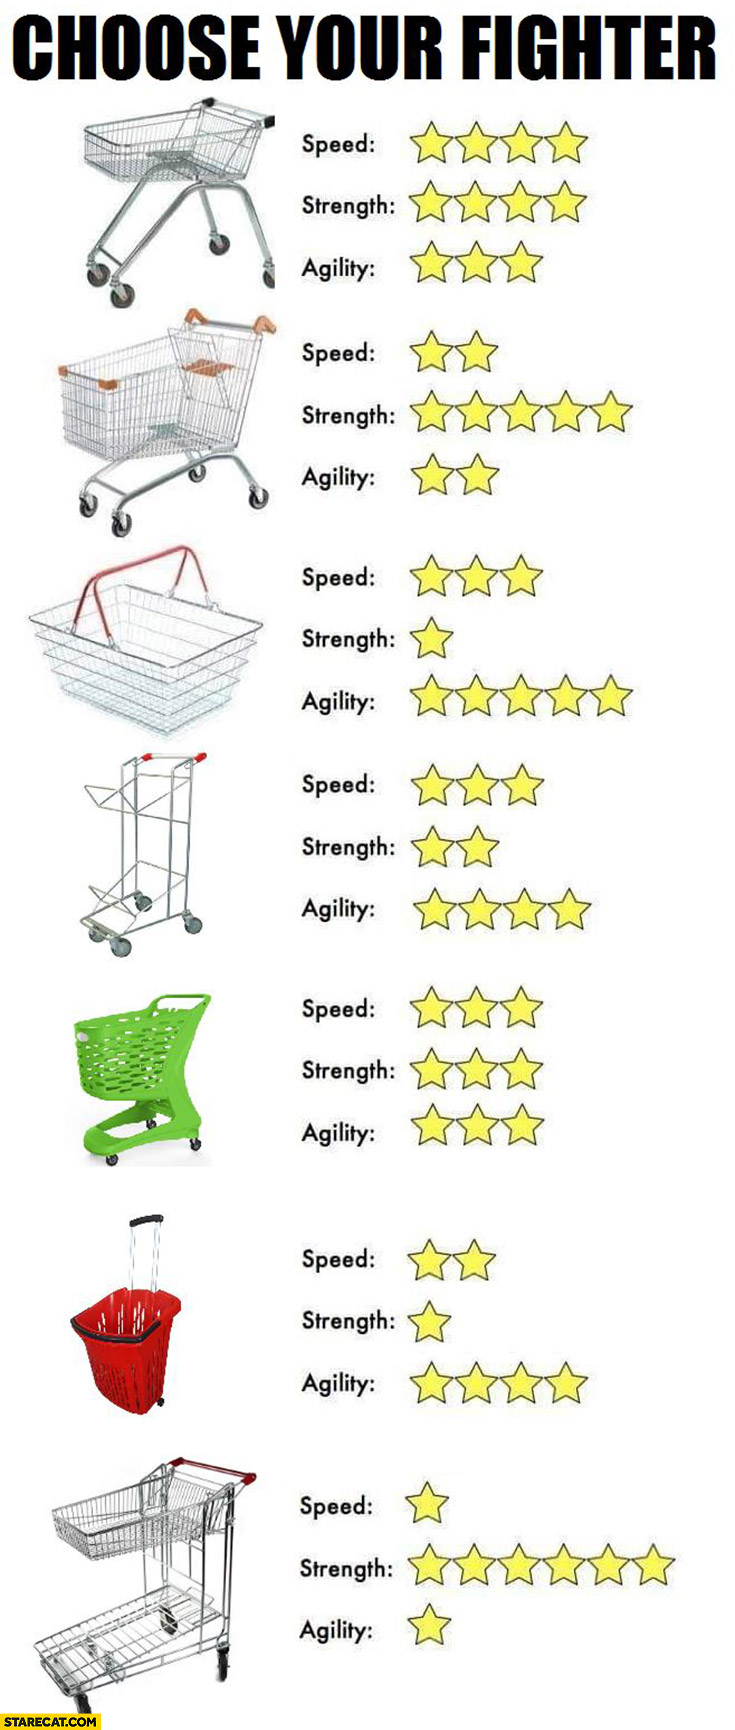 Choose your fighter: shopping carts speed strength agility